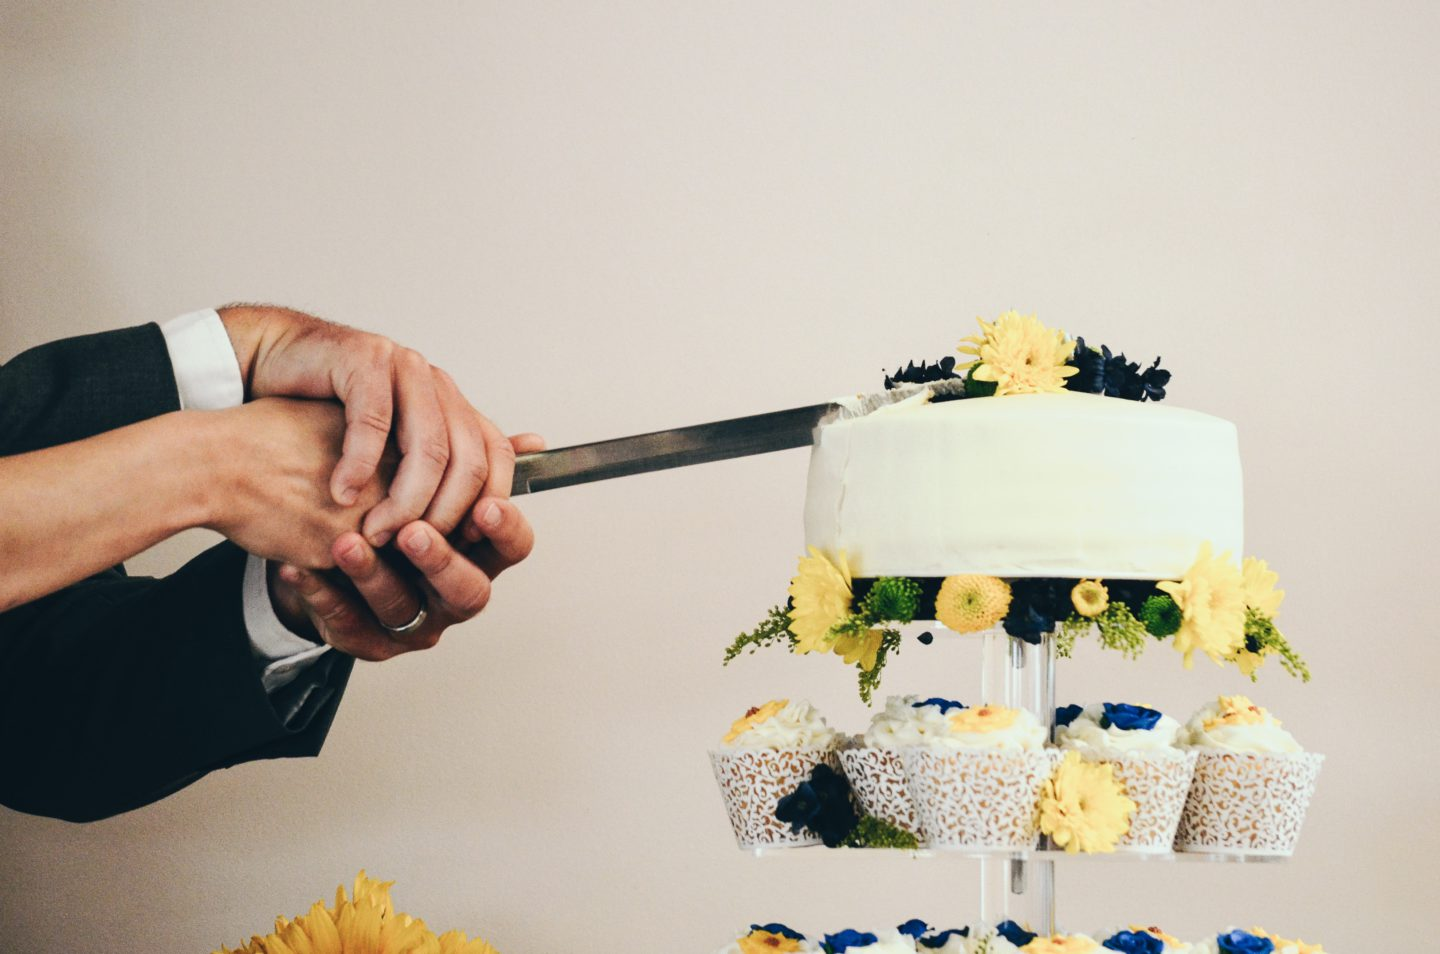 couple both holding knife slicing a cake on tray